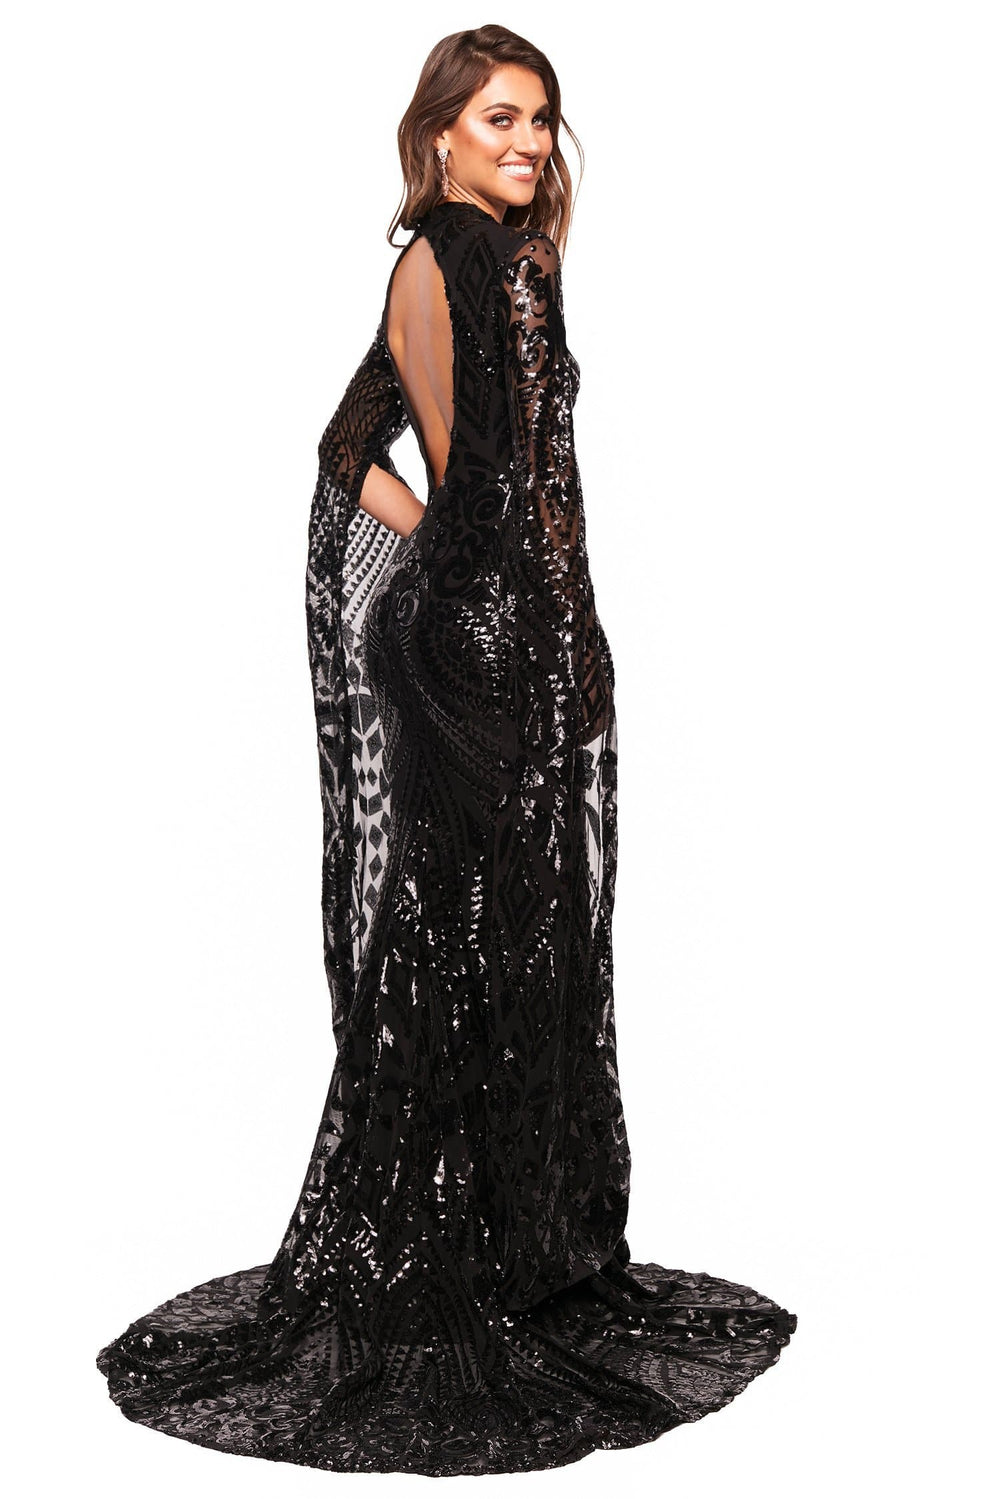 A&N Luxe Kenza - Black Long Sleeve Cape Patterned Sequin Cut-Out Gown